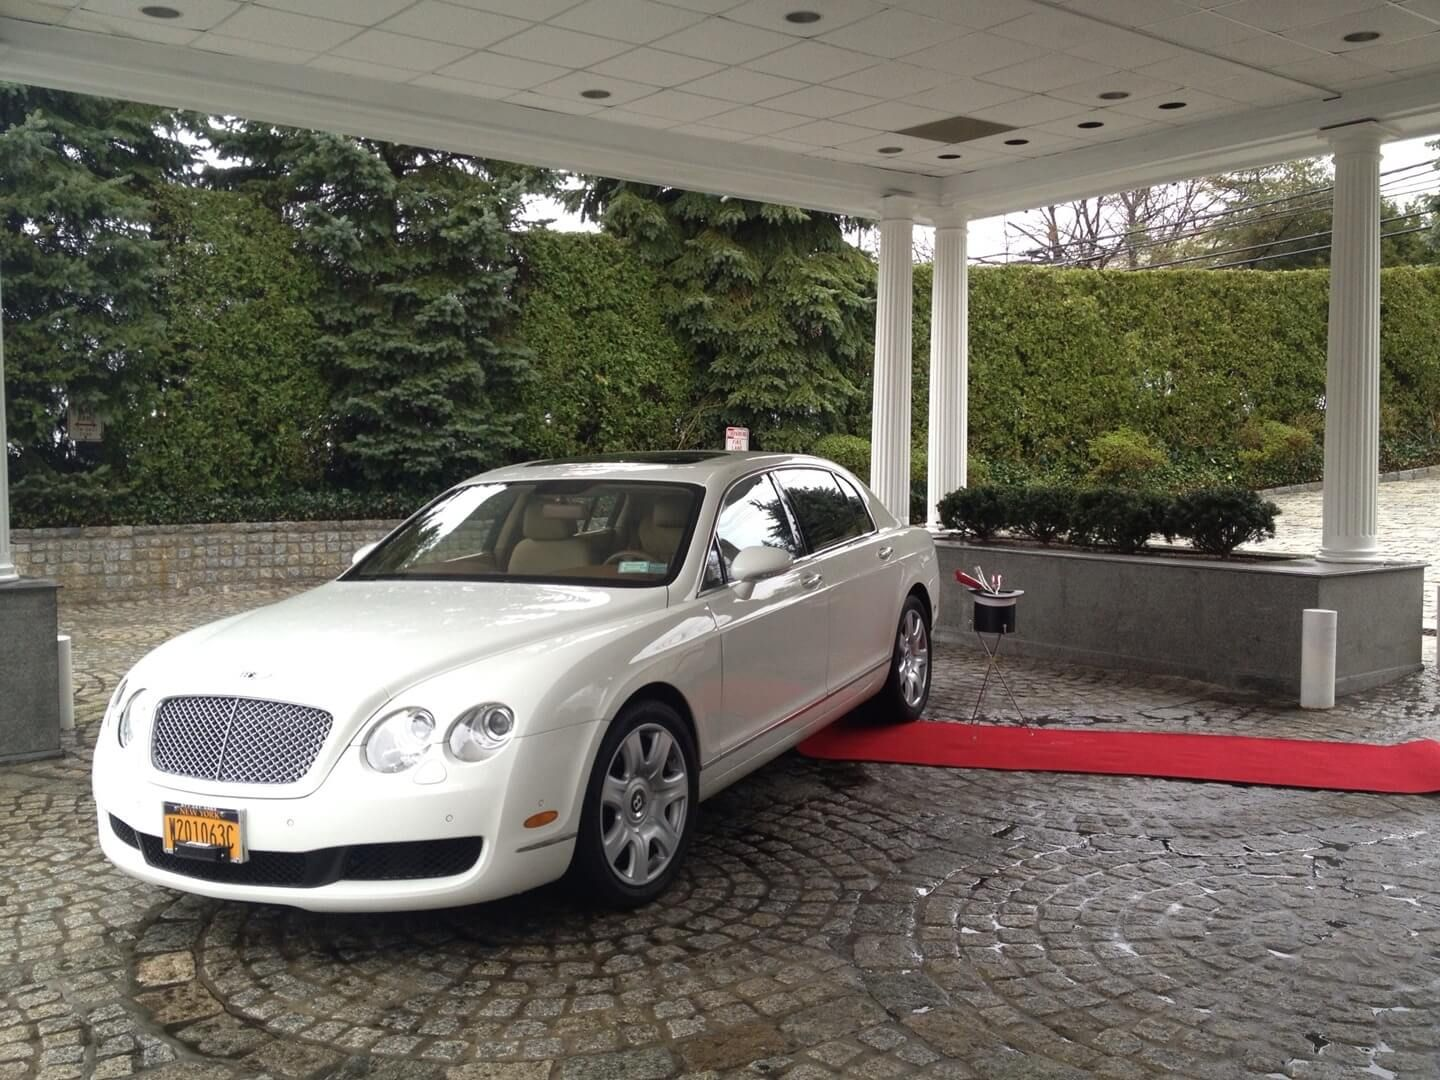 hire stretched dsc silver countyhere chrysler fleet areahere limo limos rental baby bentley class in